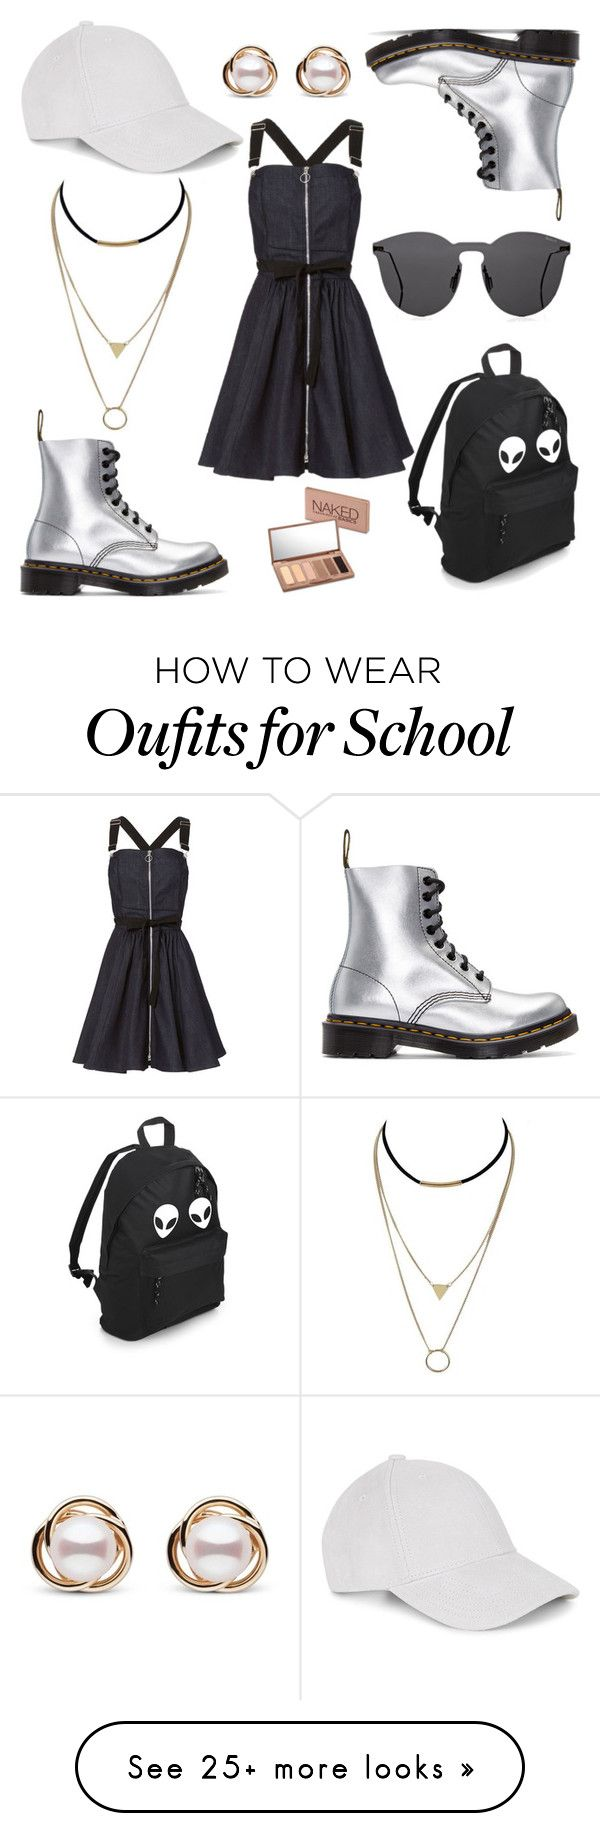 """Untitled #296"" by elmebetegszoszi on Polyvore featuring Dr. Martens, Adam Selman, Le Amonie, Urban Decay, Illesteva and Trilogy"